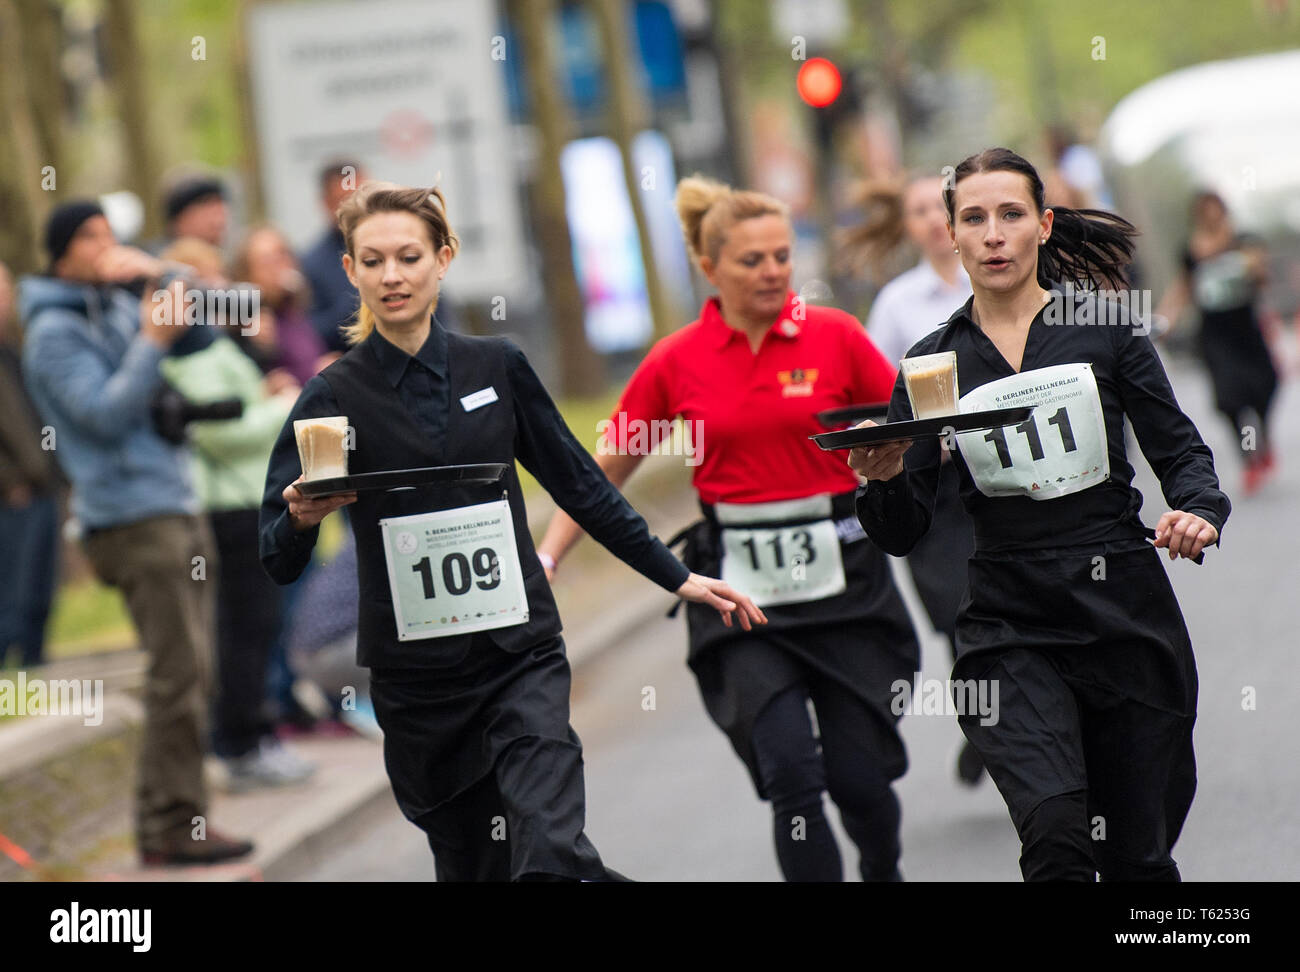 Berlin, Germany. 28th Apr, 2019. Waitresses run past the spectators with filled tablets at the 9th Berlin Waiter Run. Waiters, barkeepers, chefs and bellboys compete in the art of fast gastronomy. The 400 meter long running track is located on the one-sided closed Ku'damm. Credit: Monika Skolimowska/dpa-Zentralbild/dpa/Alamy Live News Stock Photo